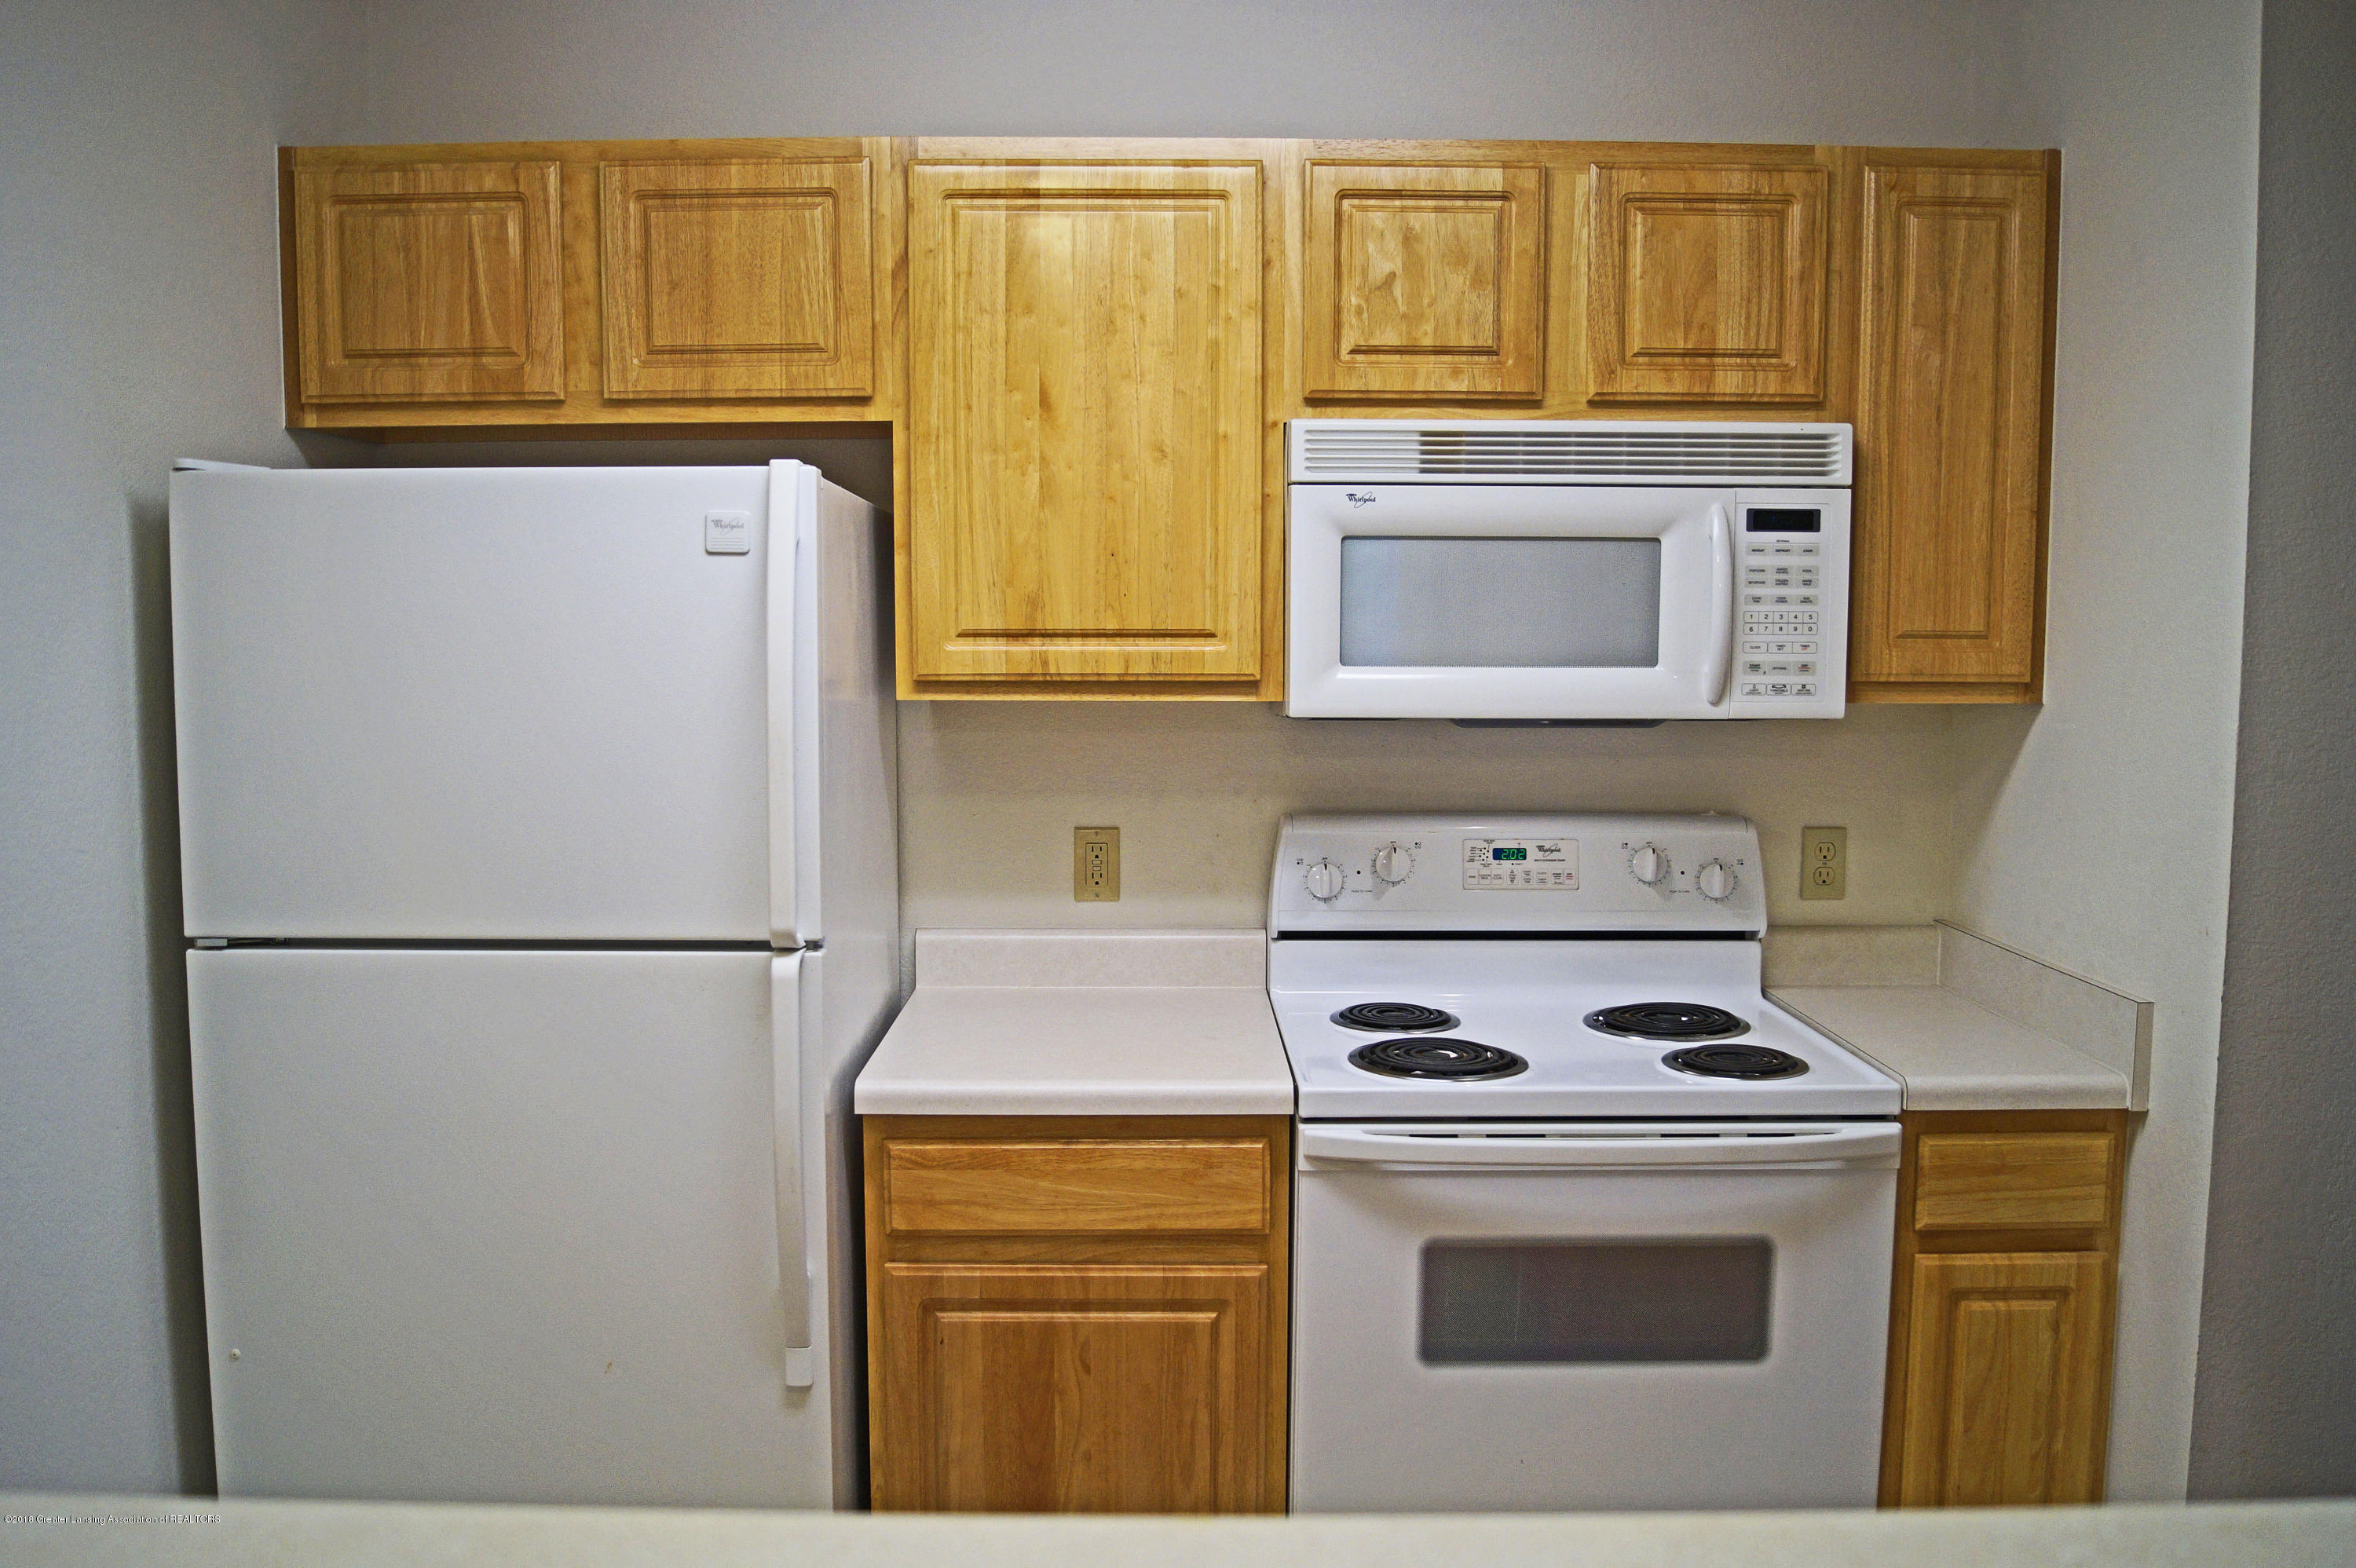 338 W Saginaw St UNIT 9 - Kitchen - 7